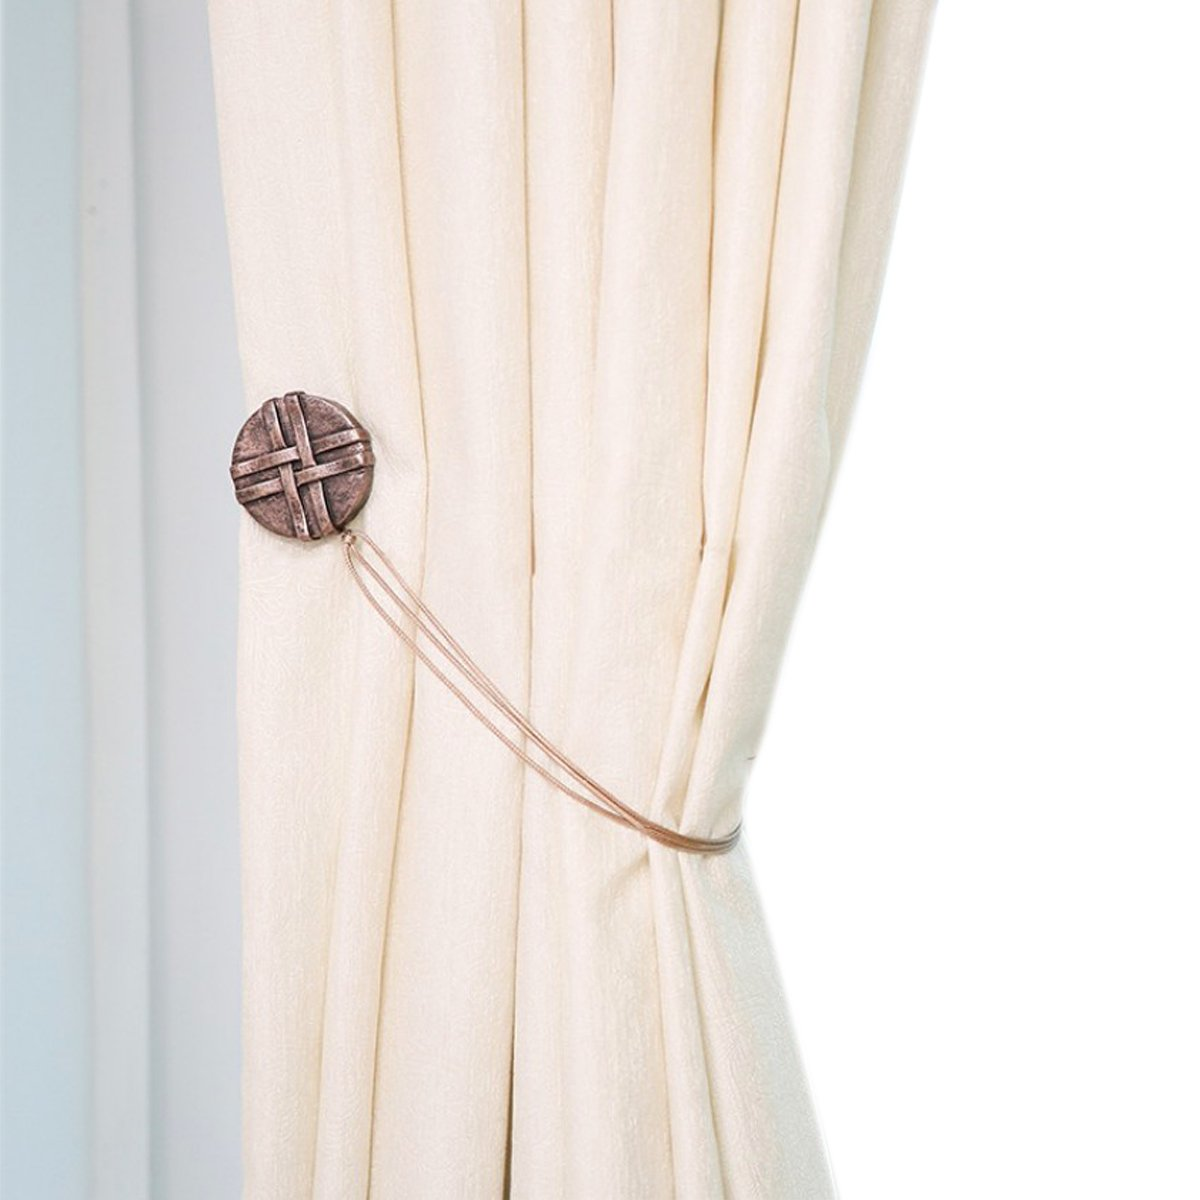 YING CHIC YYC 2 Pcs Resin Round Magnetic Curtain Buckle Tieback Drapey Holder Rope (Copper)